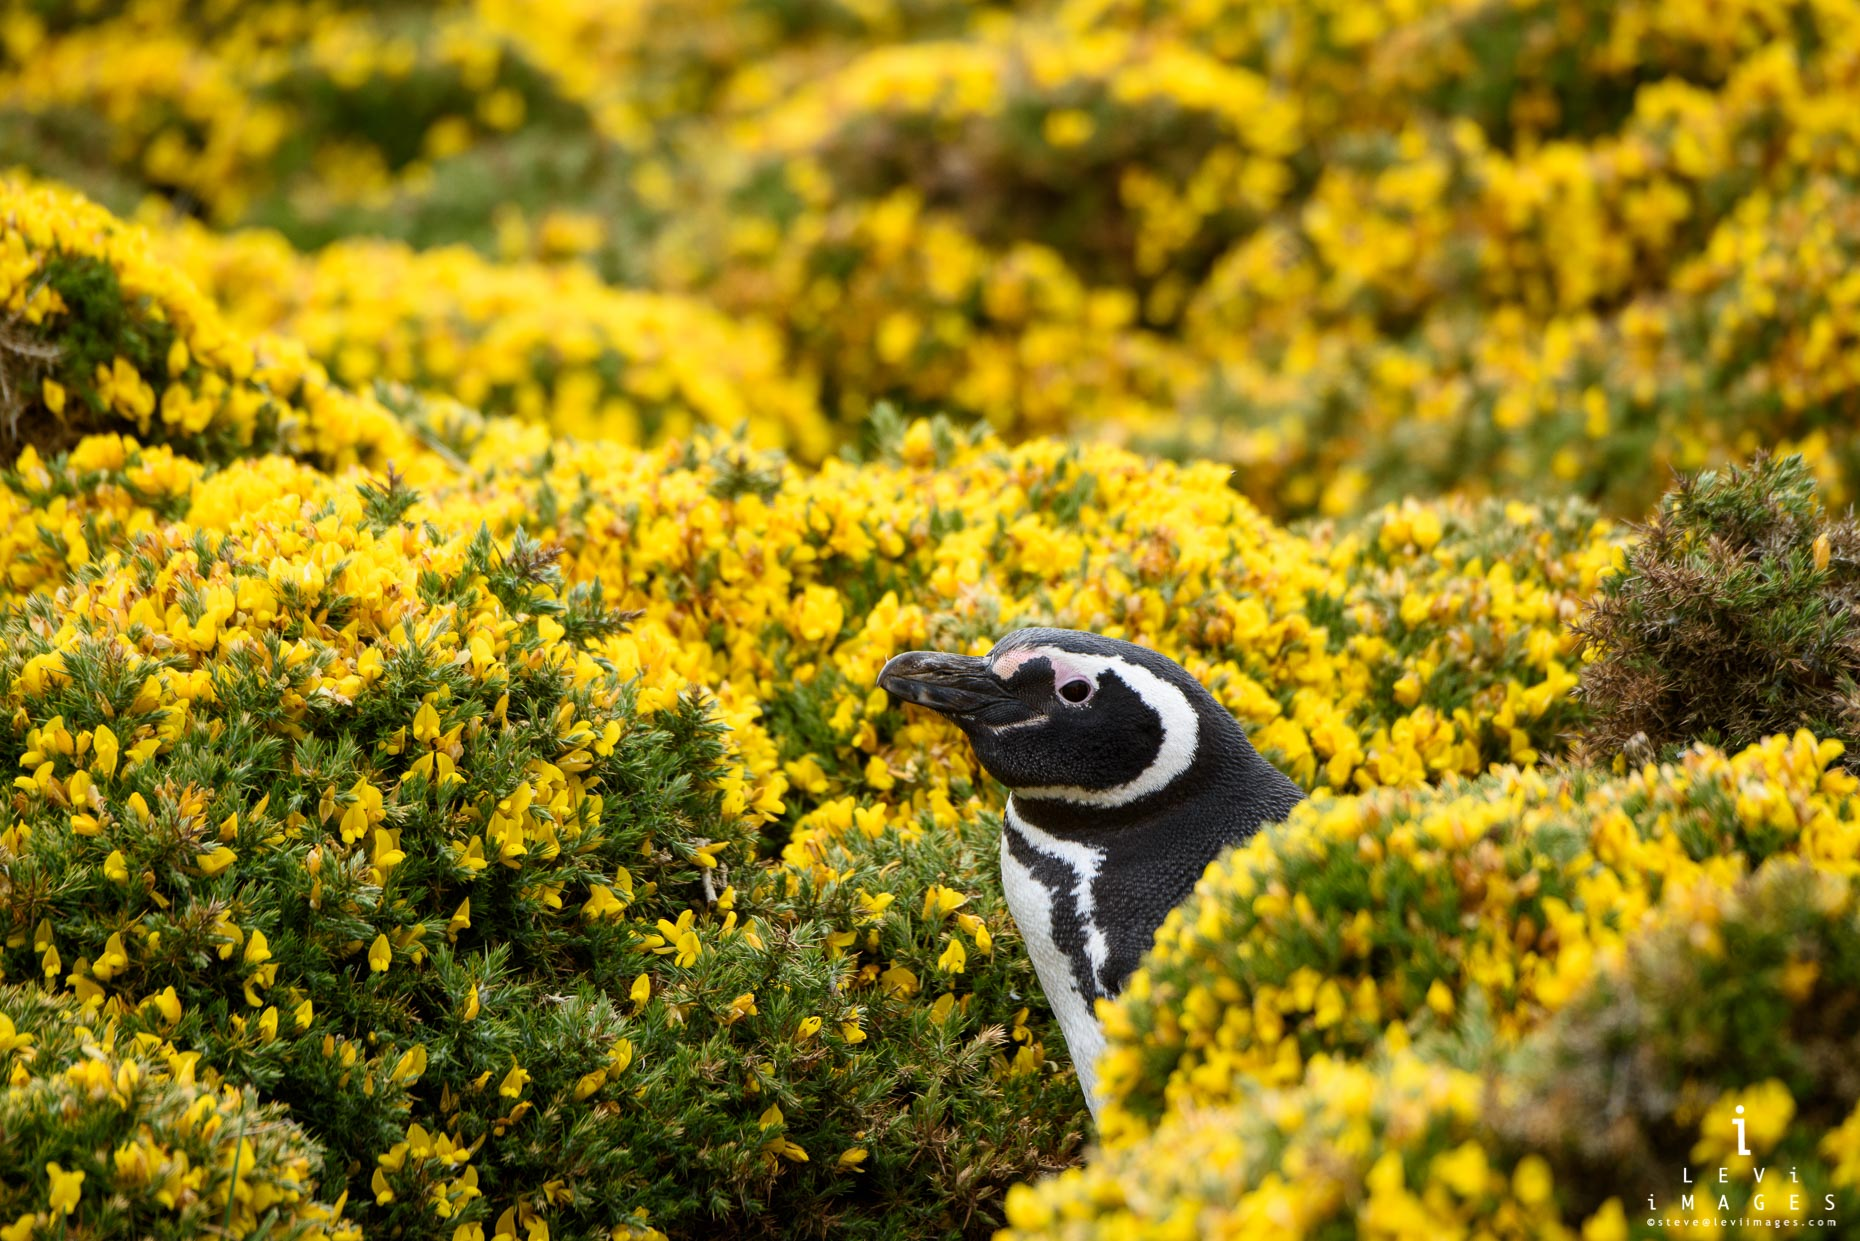 A Magellanic penguin (Spheniscus magellanicus) peeks out of gorse bushes. Bleaker Island, Falkland Islands